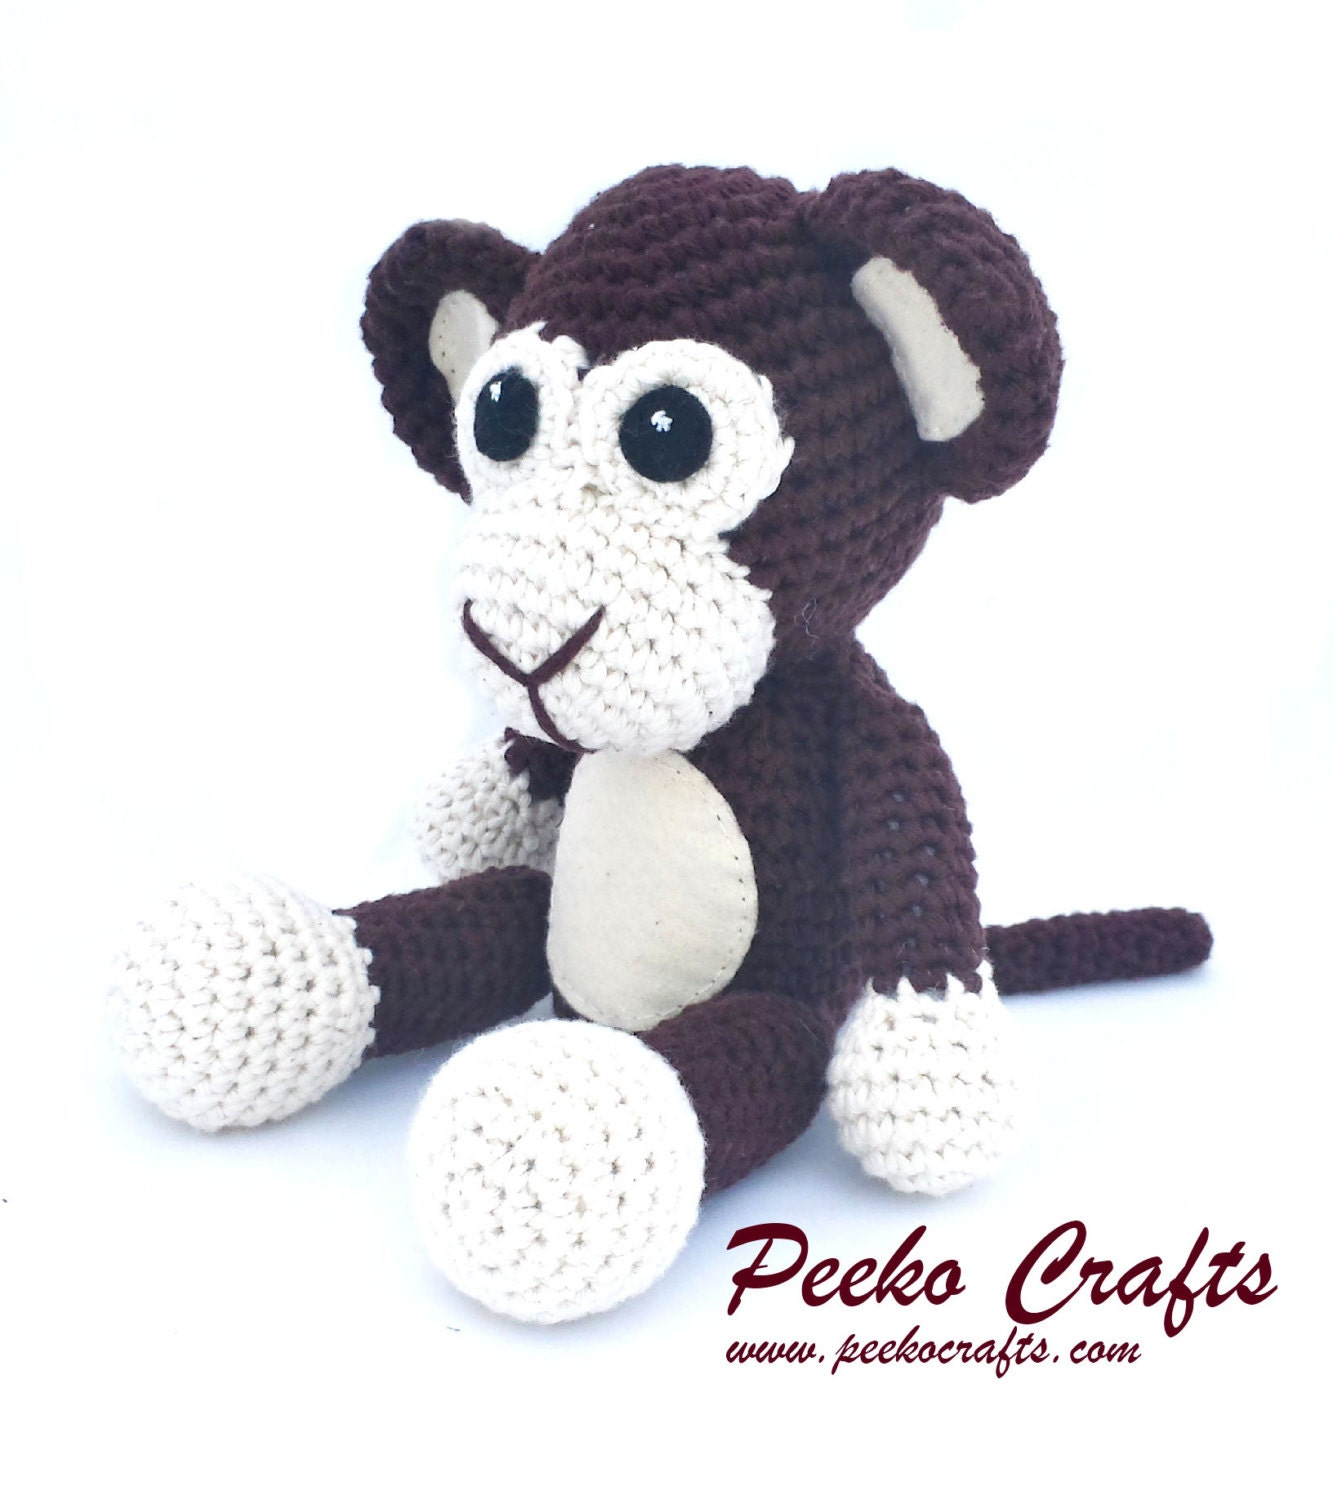 Amigurumi Monkey Etsy : Amigurumi Monkey Crochet Pattern by PeekoCrafts on Etsy